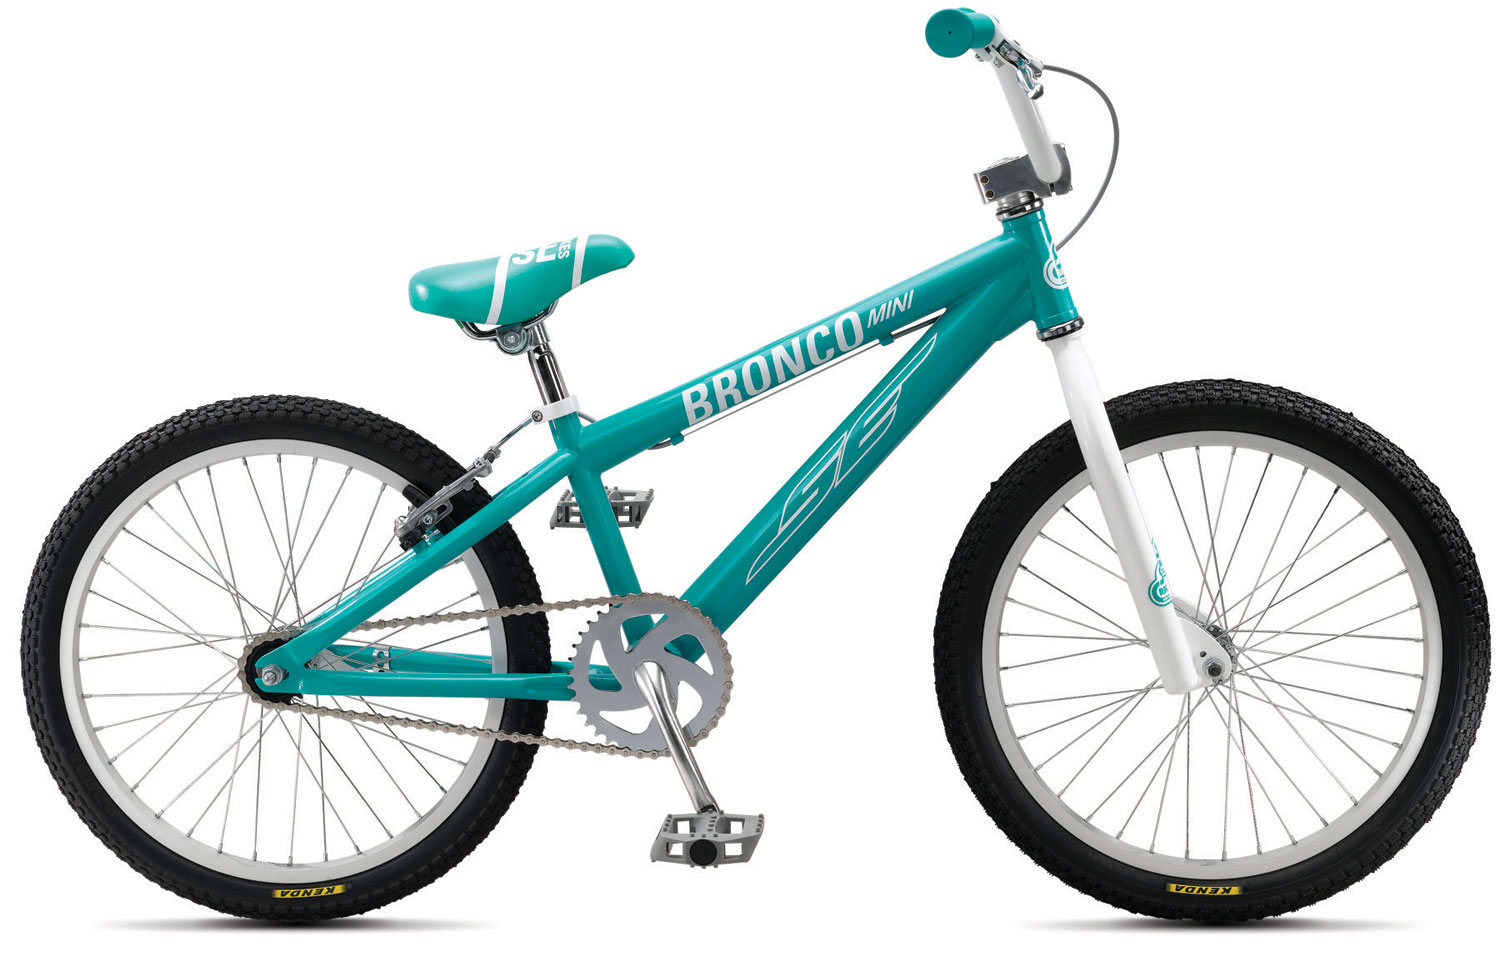 "BMX Key Features of the SE Bronco Mini Race Bike: FRAME SE Racing Hi-ten FORK SE Racing 1-1/8"" Threadless HEADSET Tange 1-1/8"" Threadless HANDLEBARS SE Wing Bar, 20.5"" x 6"" STEM SE Racing Front Load 1-1/8 Alloy GRIPS Mini Grip BRAKE LEVER Pro Max 2 Finger BRAKE(S) Rush V-Brake SEAT SE Racing w/ Custom Imprinted Cover SEAT POST SE Racing Straight Post 25.4 CRANKSET 1-pc Steel, Amrican BB, 140mm, 36T CHAIN KMC Z410 PEDAL FPD Composite Resin RIM Alex C1000, 36H Aluminum w/ 14 Ga. Spokes FRONT HUB SE Racing 36H REAR HUB SE Racing 36H, Coaster Brake w/ 16T TIRES Kenda K-Rad, 1.95 F, 1.75 R COLORS Midnight Black, Cool White, Aqua Blue, Awesome Blue WEIGHT 26.0 lbs - $179.95"